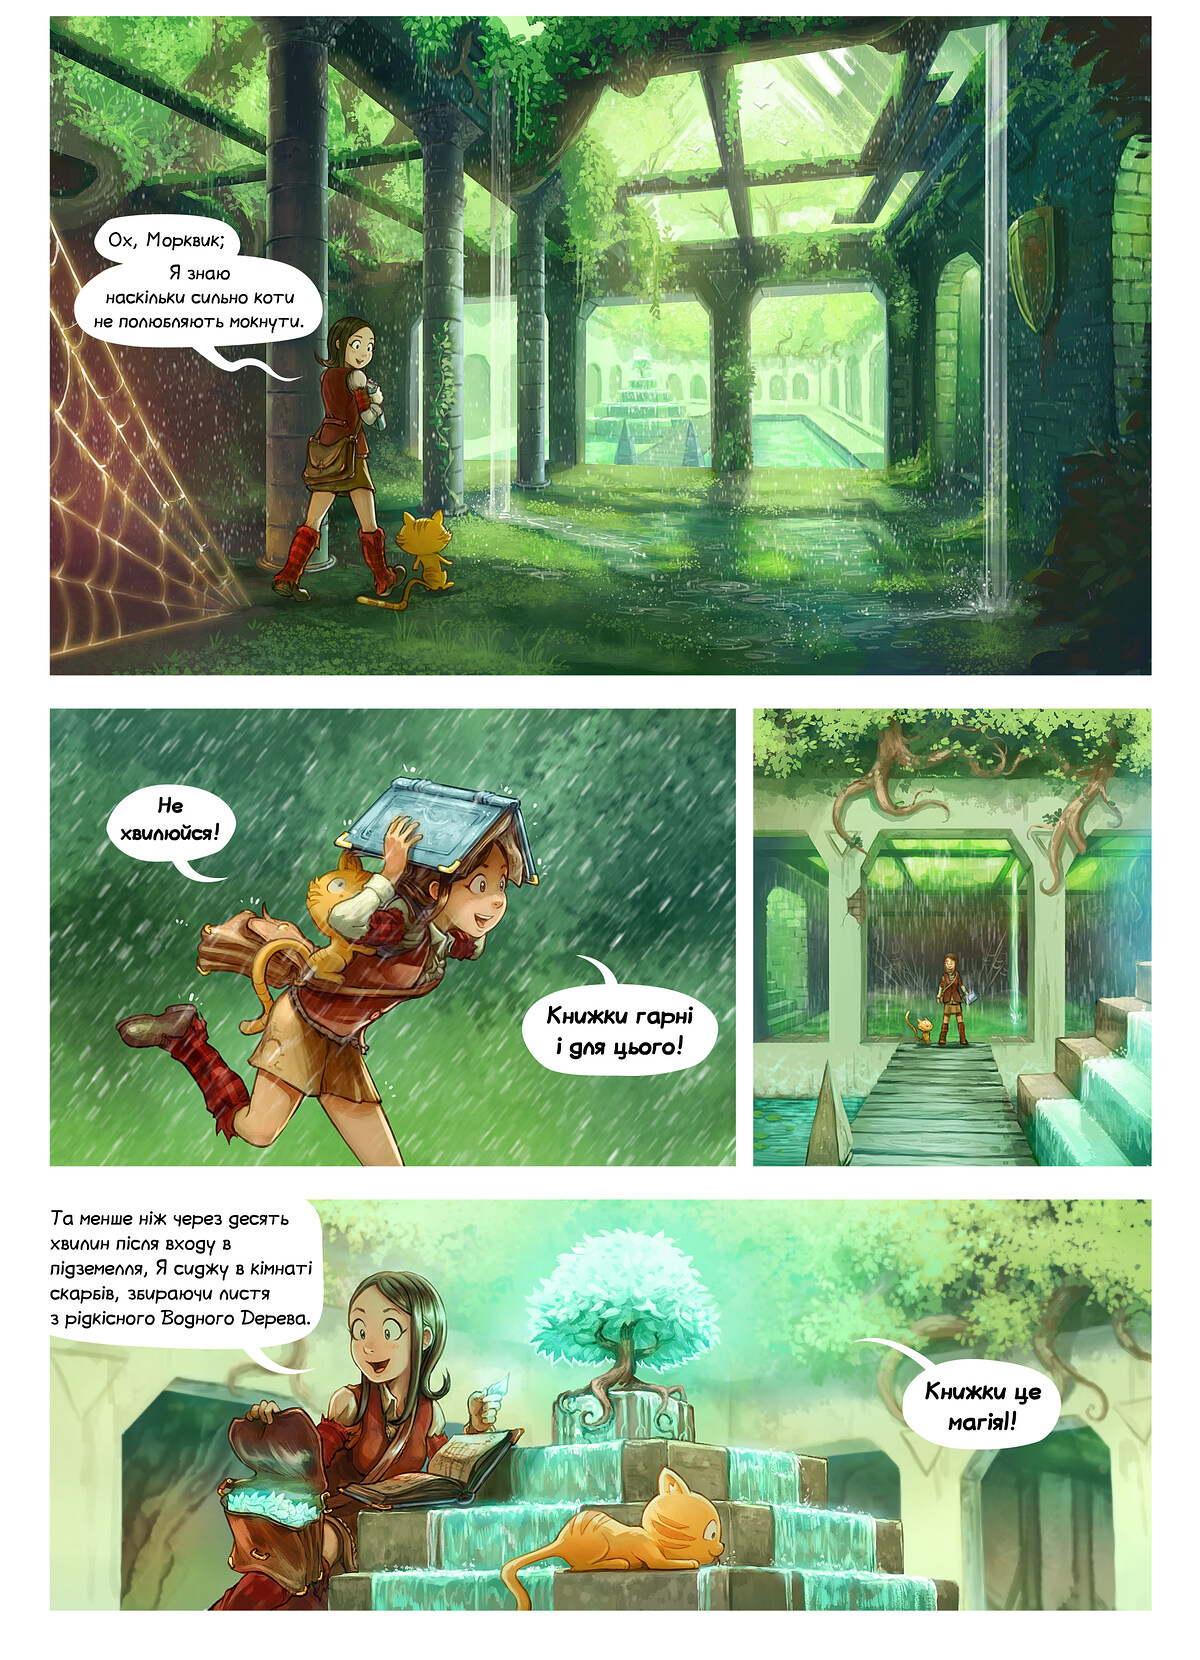 A webcomic page of Pepper&Carrot, епізод 26 [uk], стор. 3